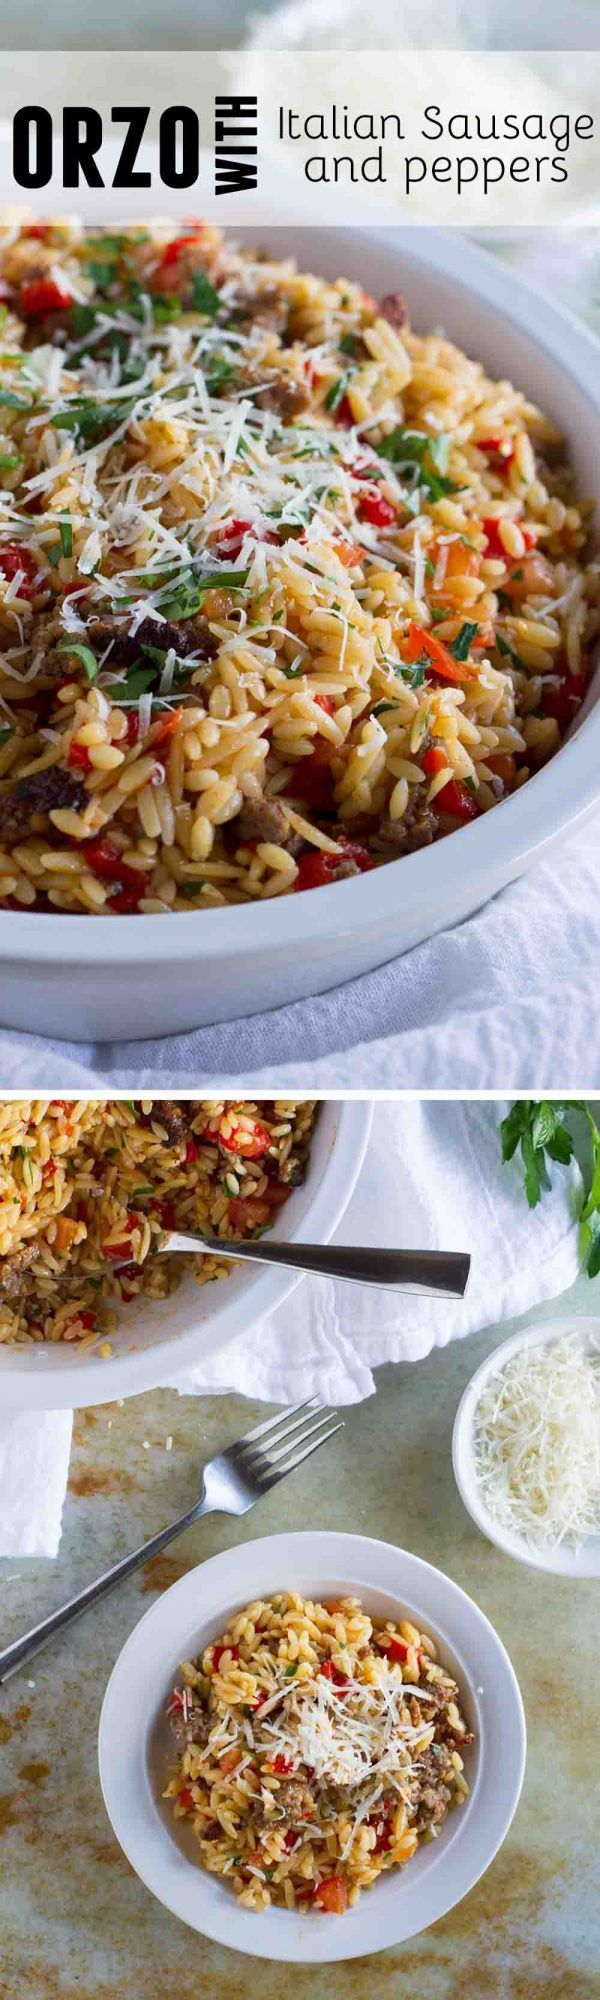 This easy Orzo with Italian Sausage and Peppers is a filling and quick meal - done in under 30 minutes! This is perfect for kids *and* adults!